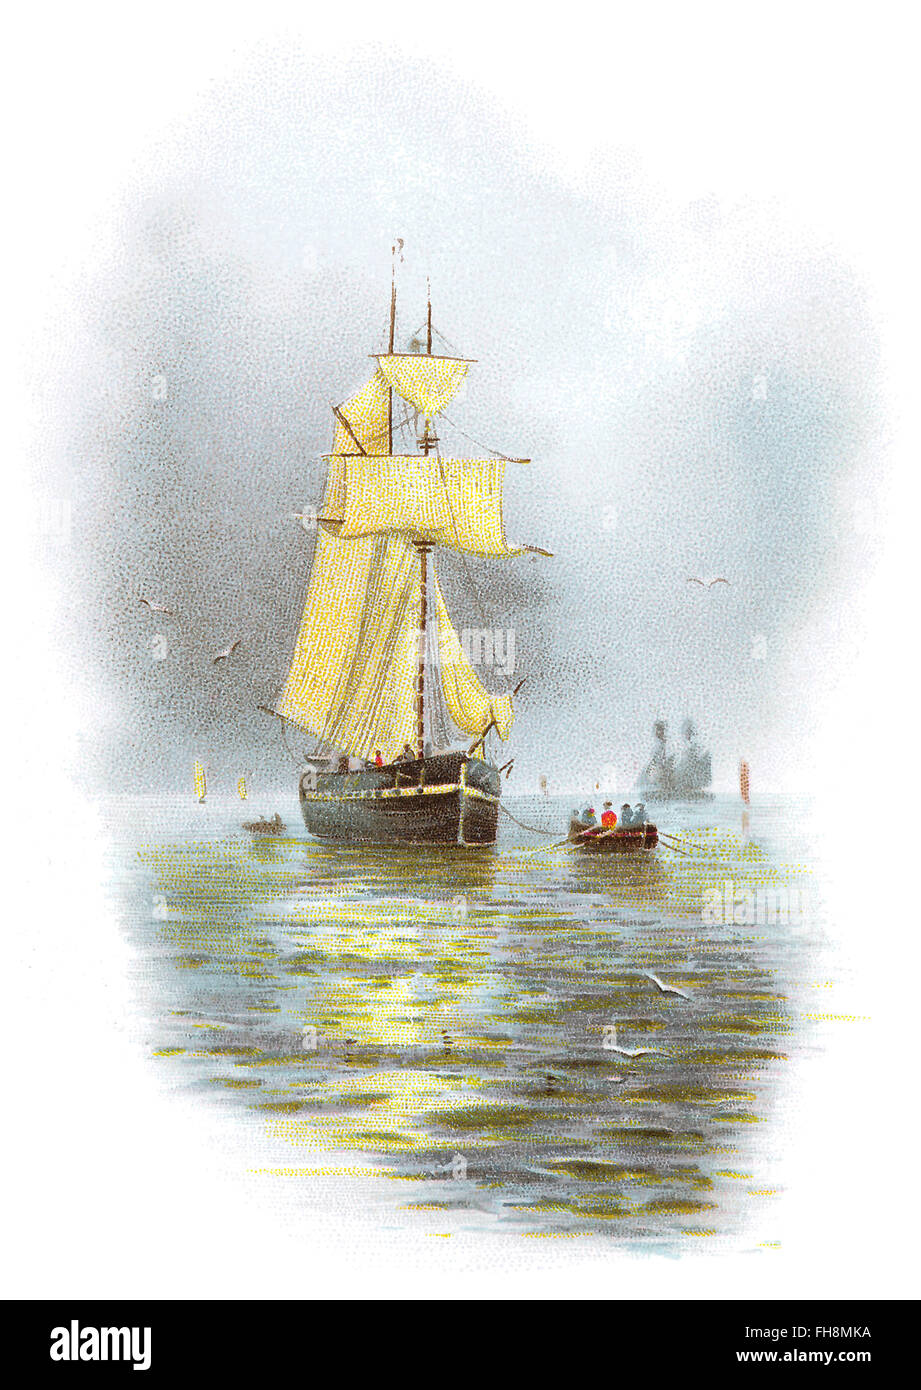 Illustration of a seascape with sailing ships and small boats. - Stock Image